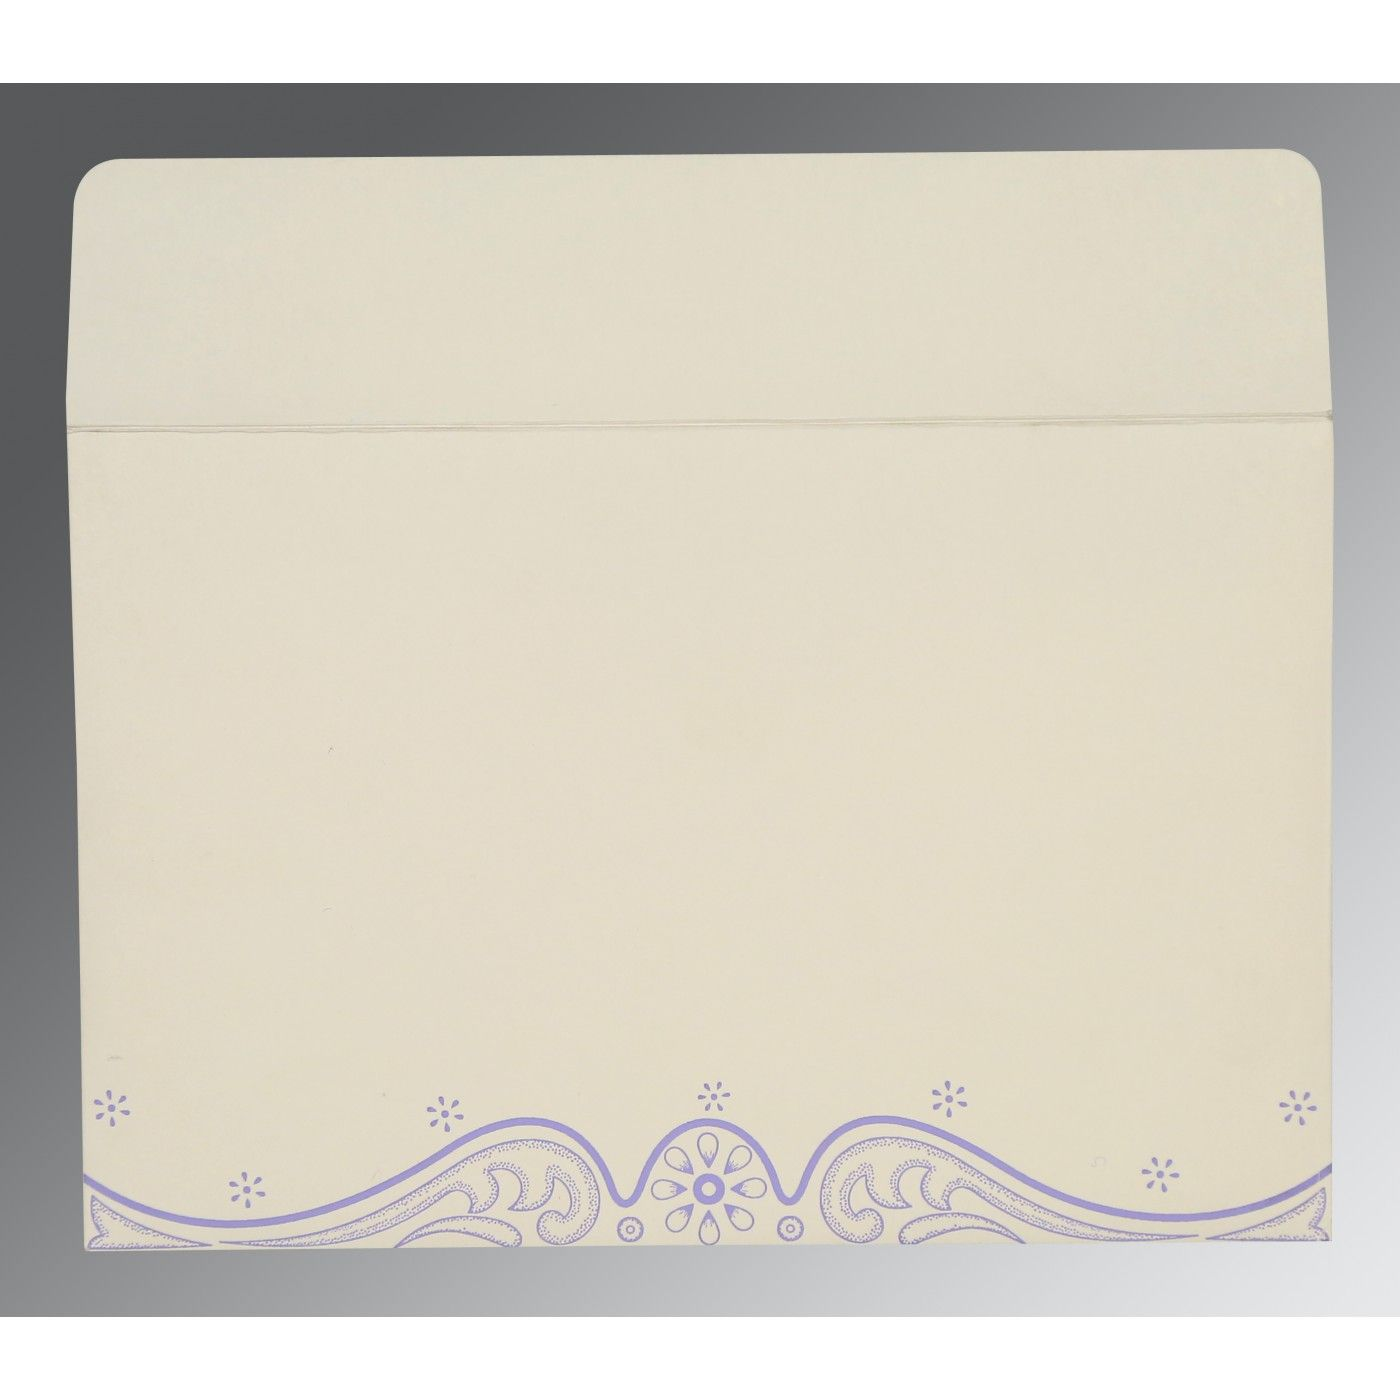 PINK PURPLE MATTE EMBOSSED WEDDING INVITATION : CSO-8221E - IndianWeddingCards